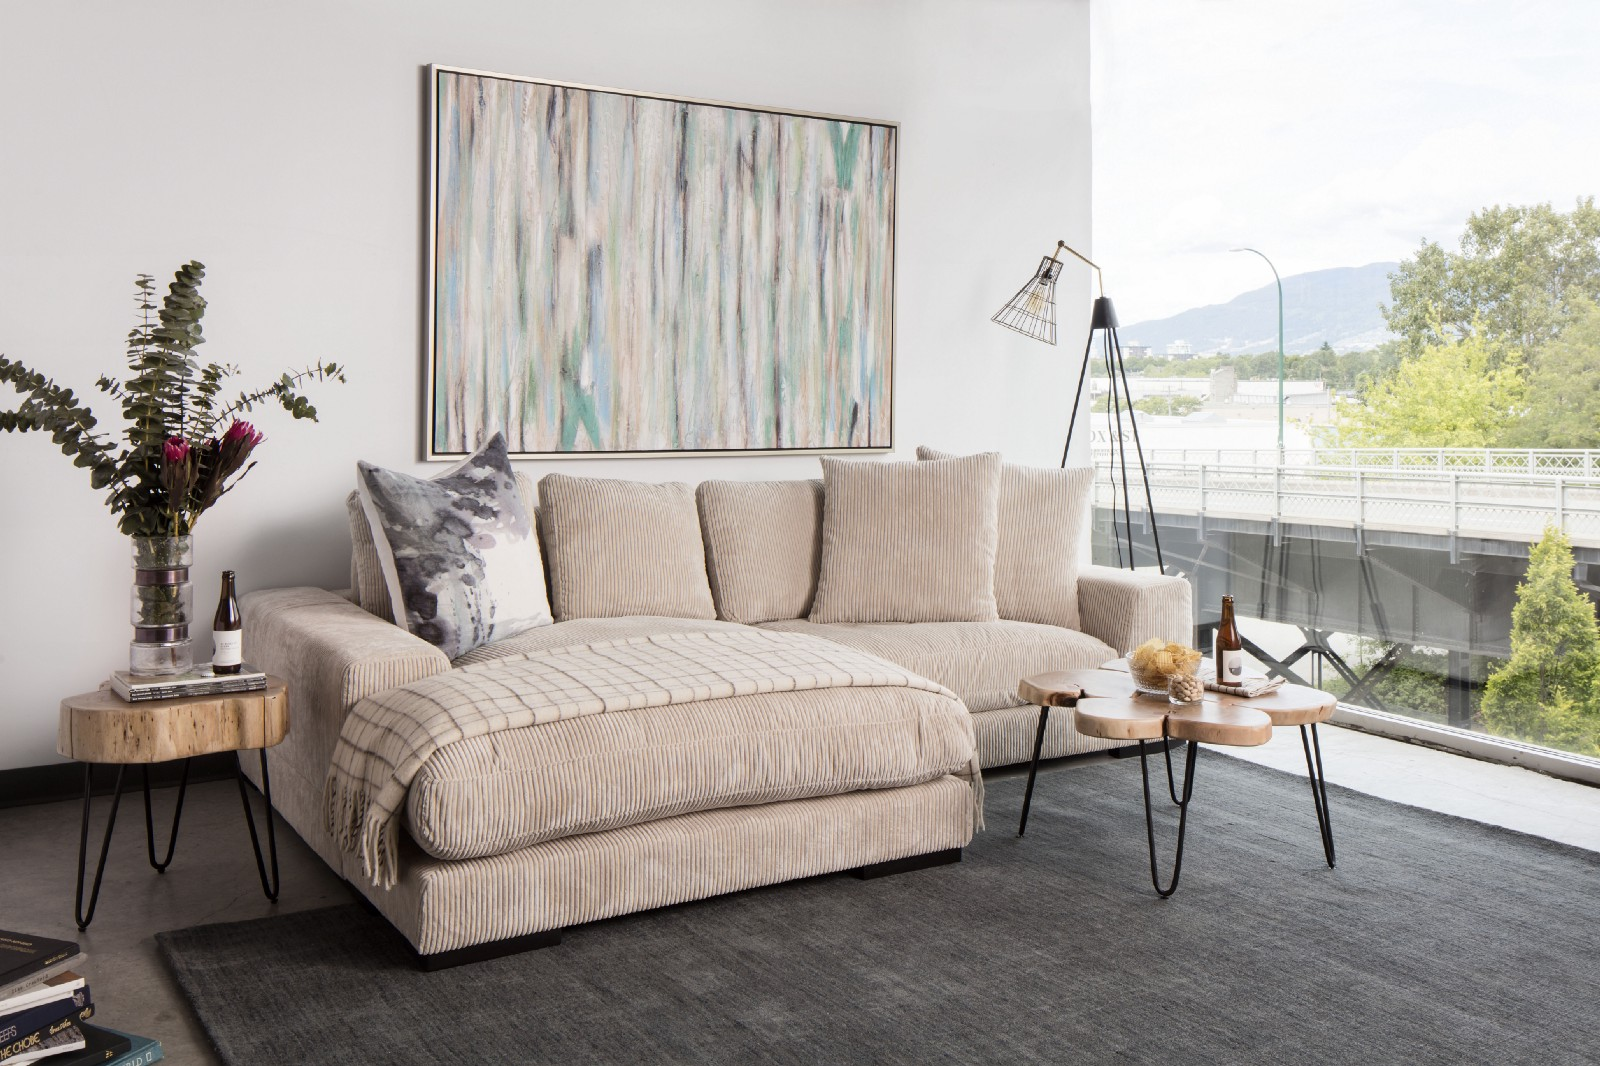 Sofa Colores Humble Hues The Five Best Colors For Sofas France And Son